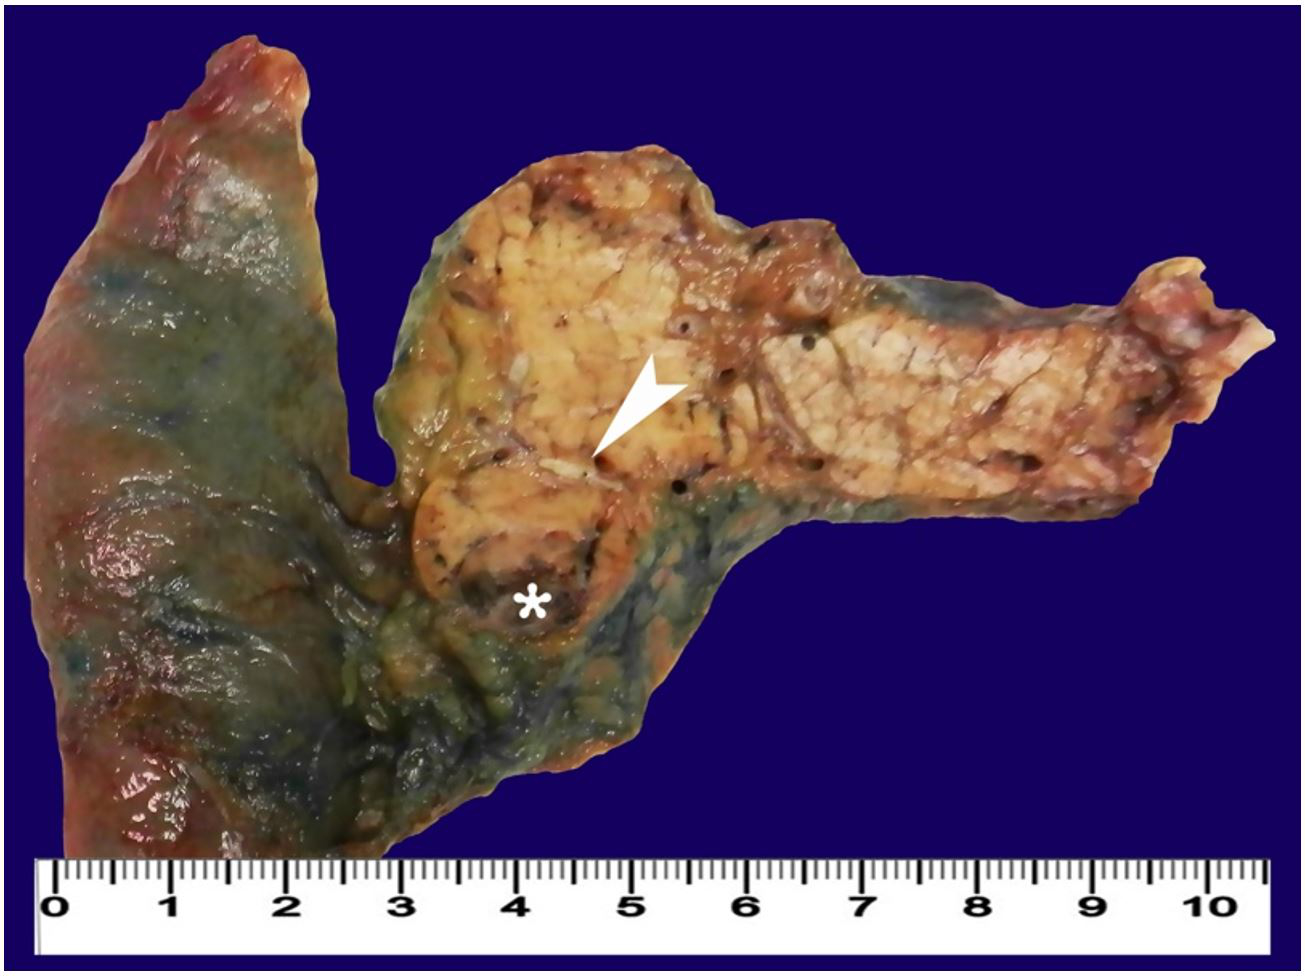 Gross view of the surgical specimen of cephalic duodenopancreactectomy showing a pancreatic nodule (arrowhead) with central cystic/necrotic changes (asterisk).